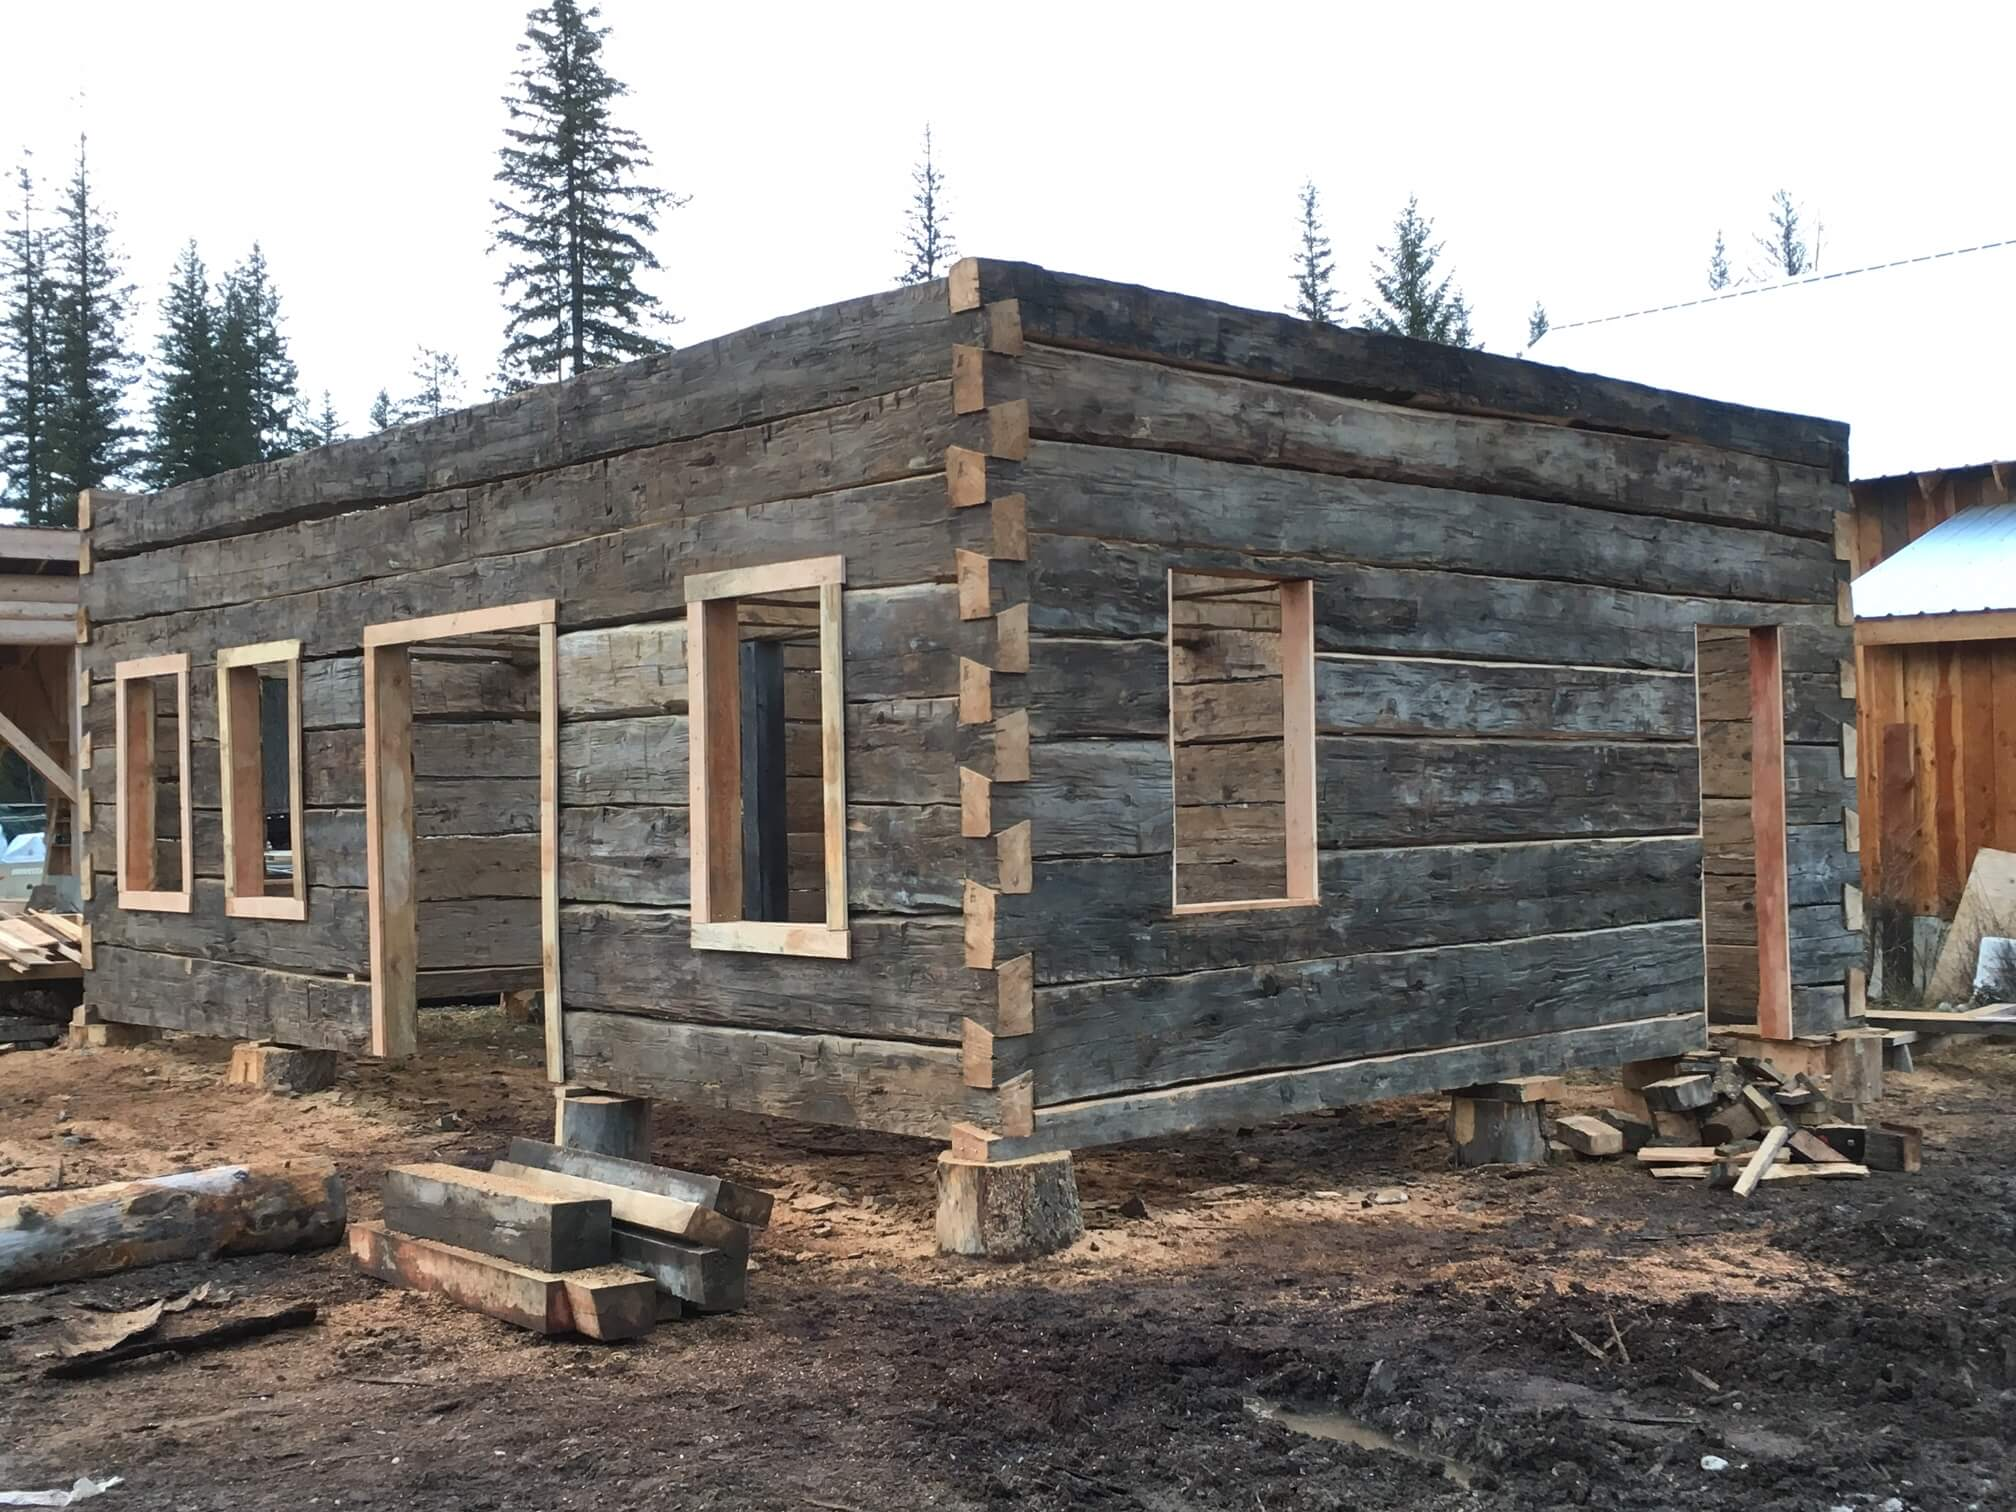 For sale hand hewn heritage log shell this building for Hewn log cabin kits